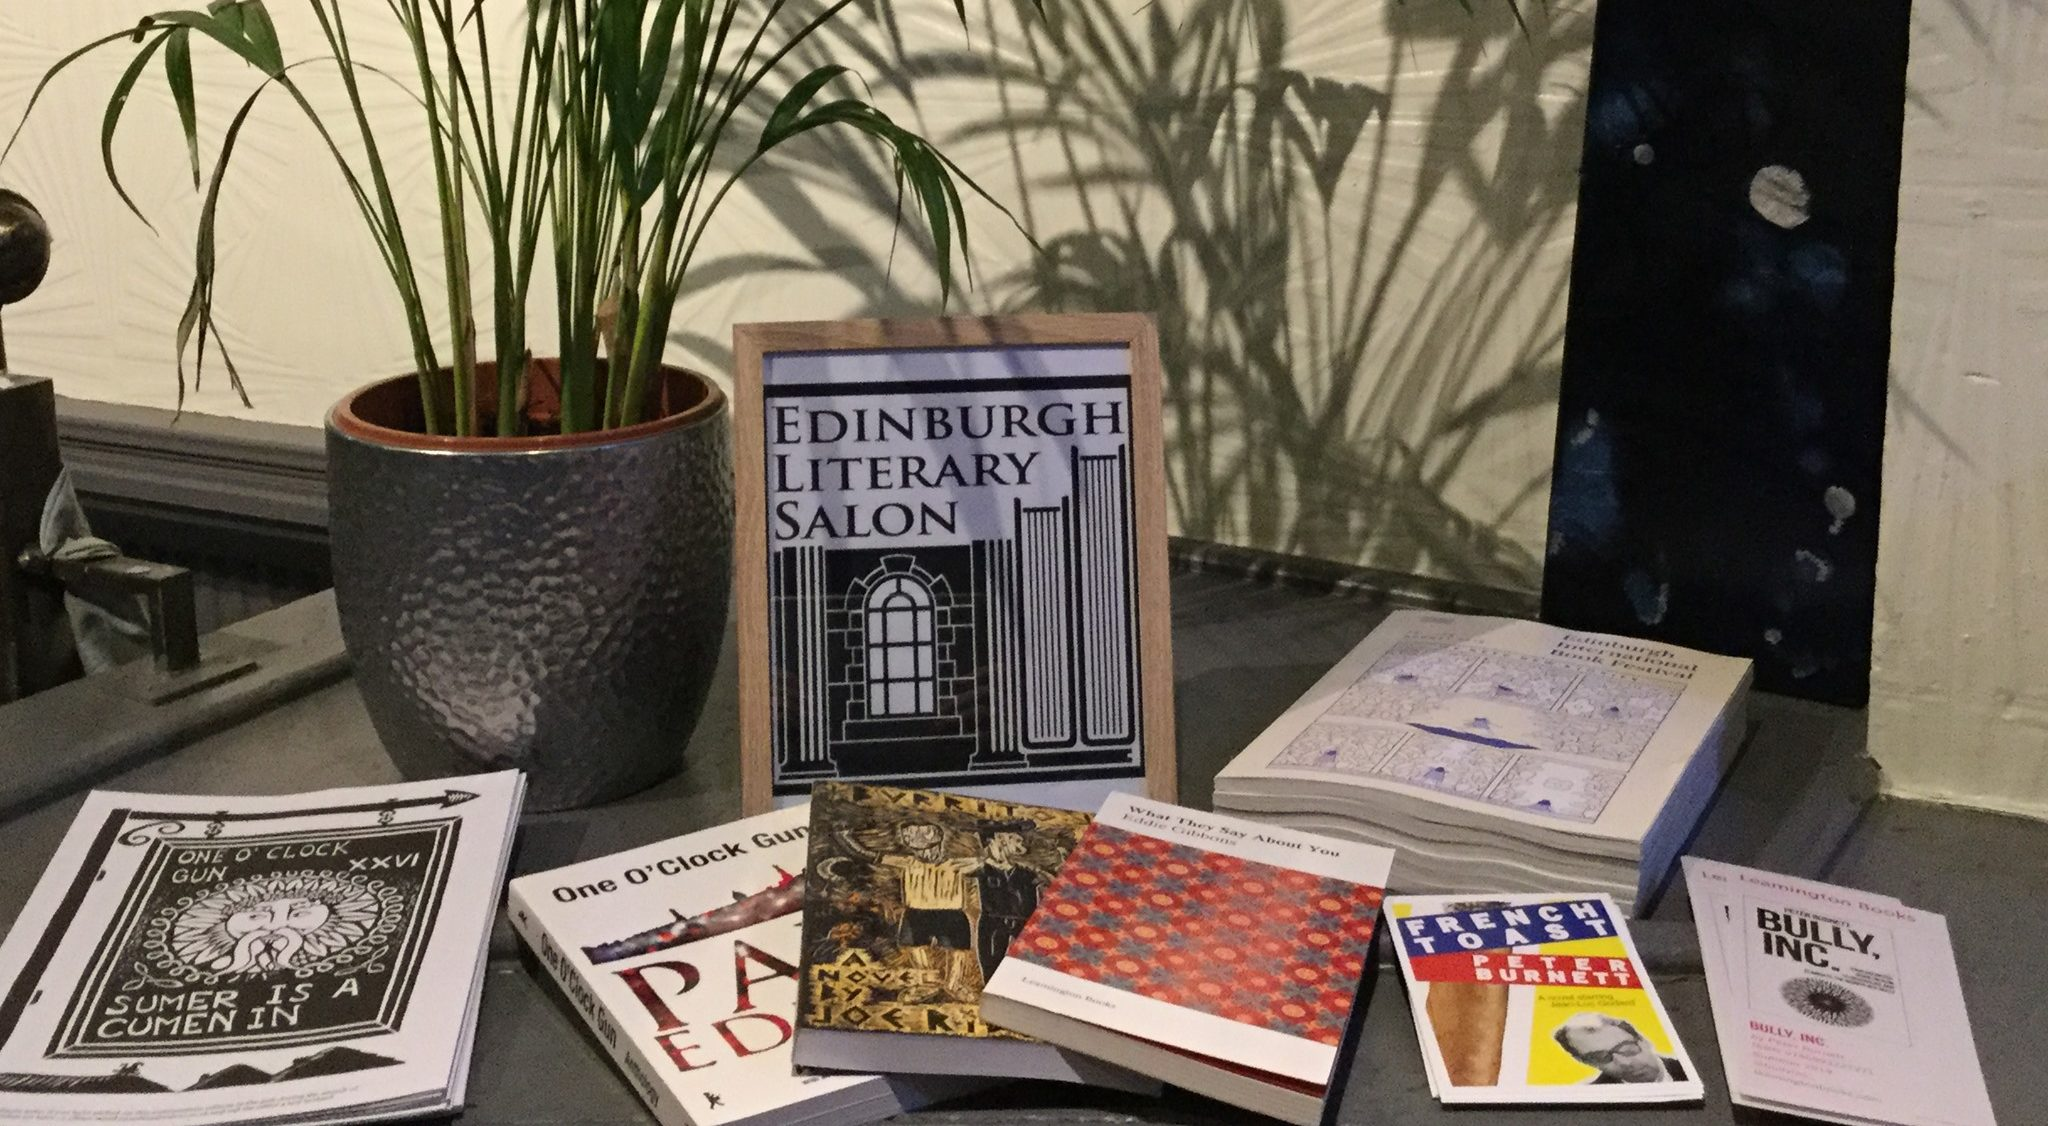 Edinburgh Literary Salon Anthology open for submission